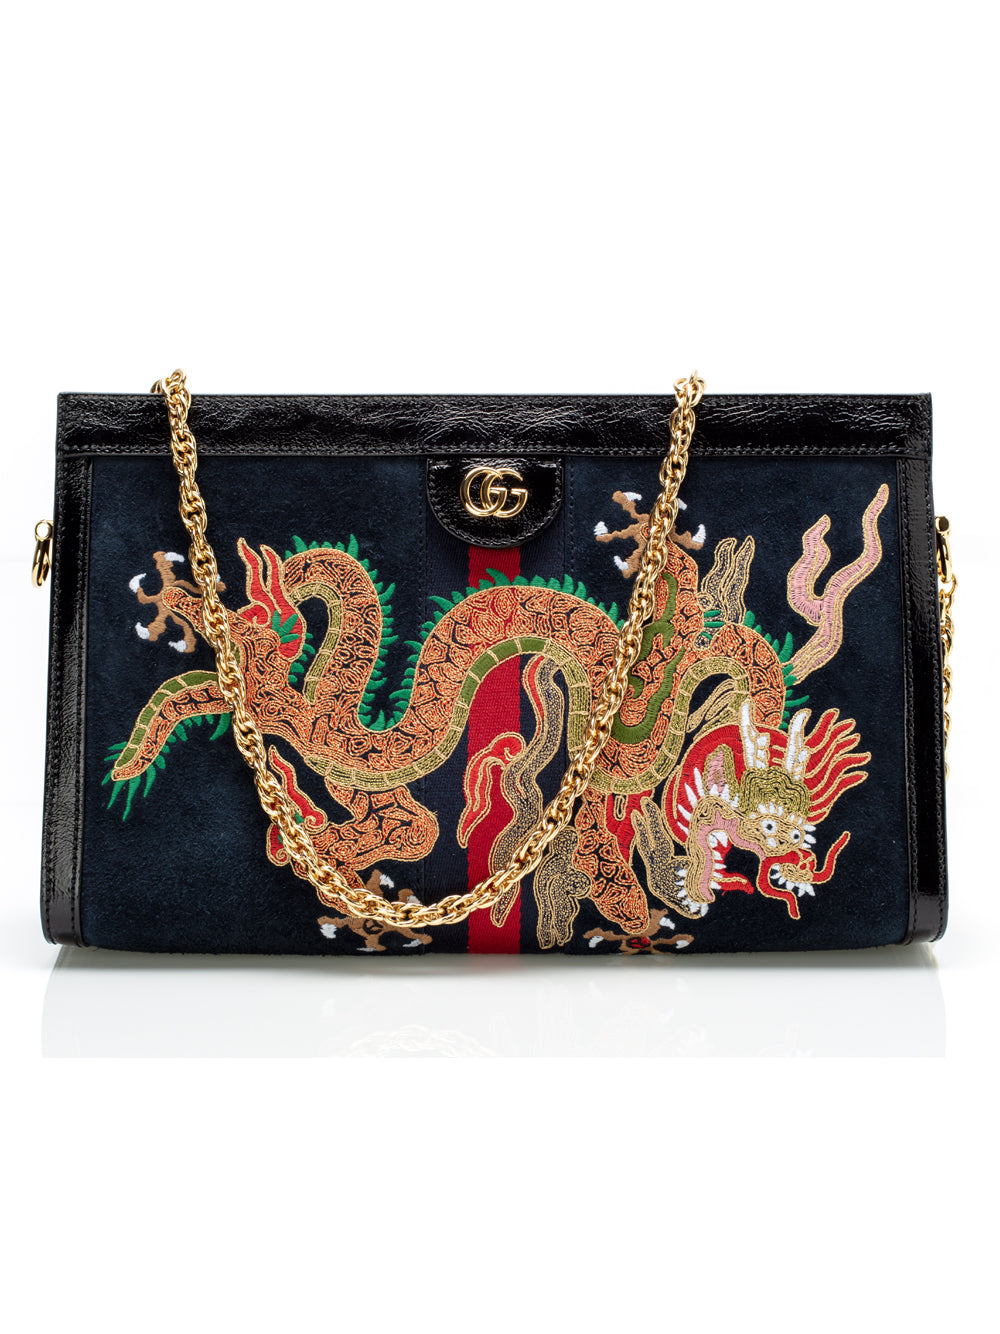 d42cd7be938a Gucci Handbags | Ophidia Embroidered Suede Shoulder Bag | www.kult ...